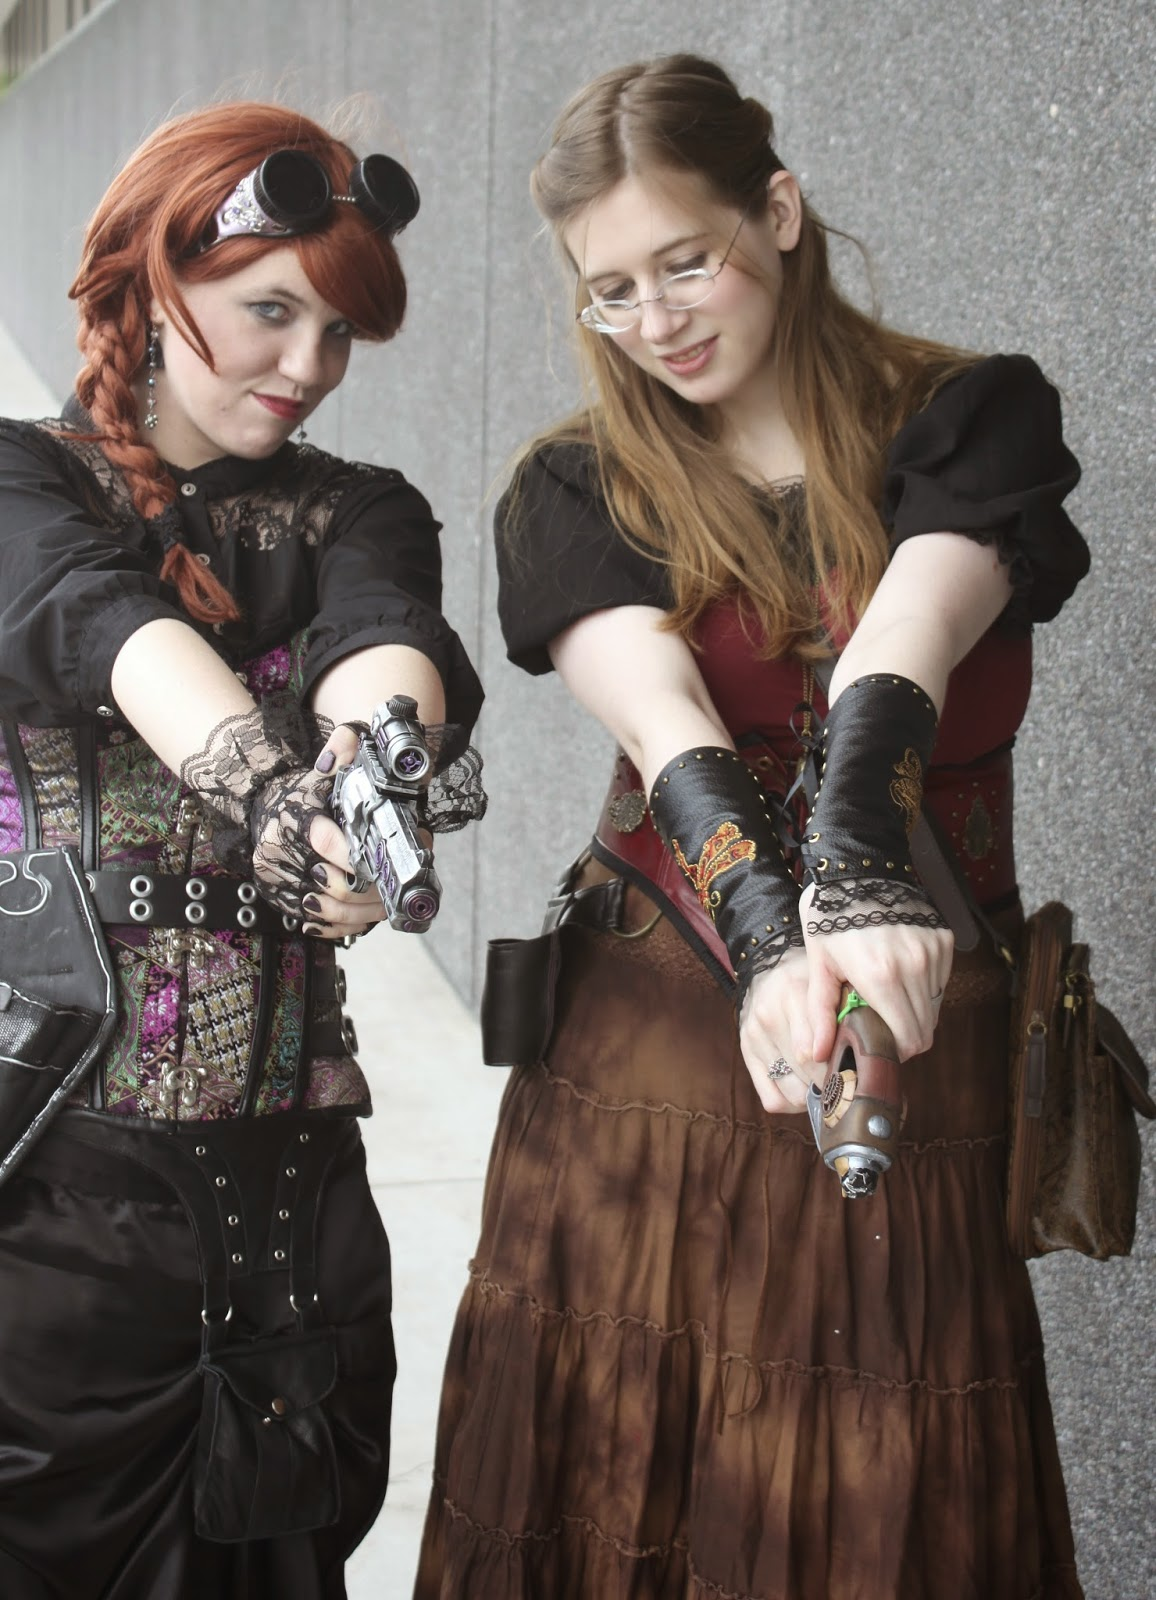 Ste&unk Pirates and Disney goes Hipster  sc 1 st  Confessions of a Seamstress & Confessions of a Seamstress: Steampunk Pirates and Disney goes Hipster